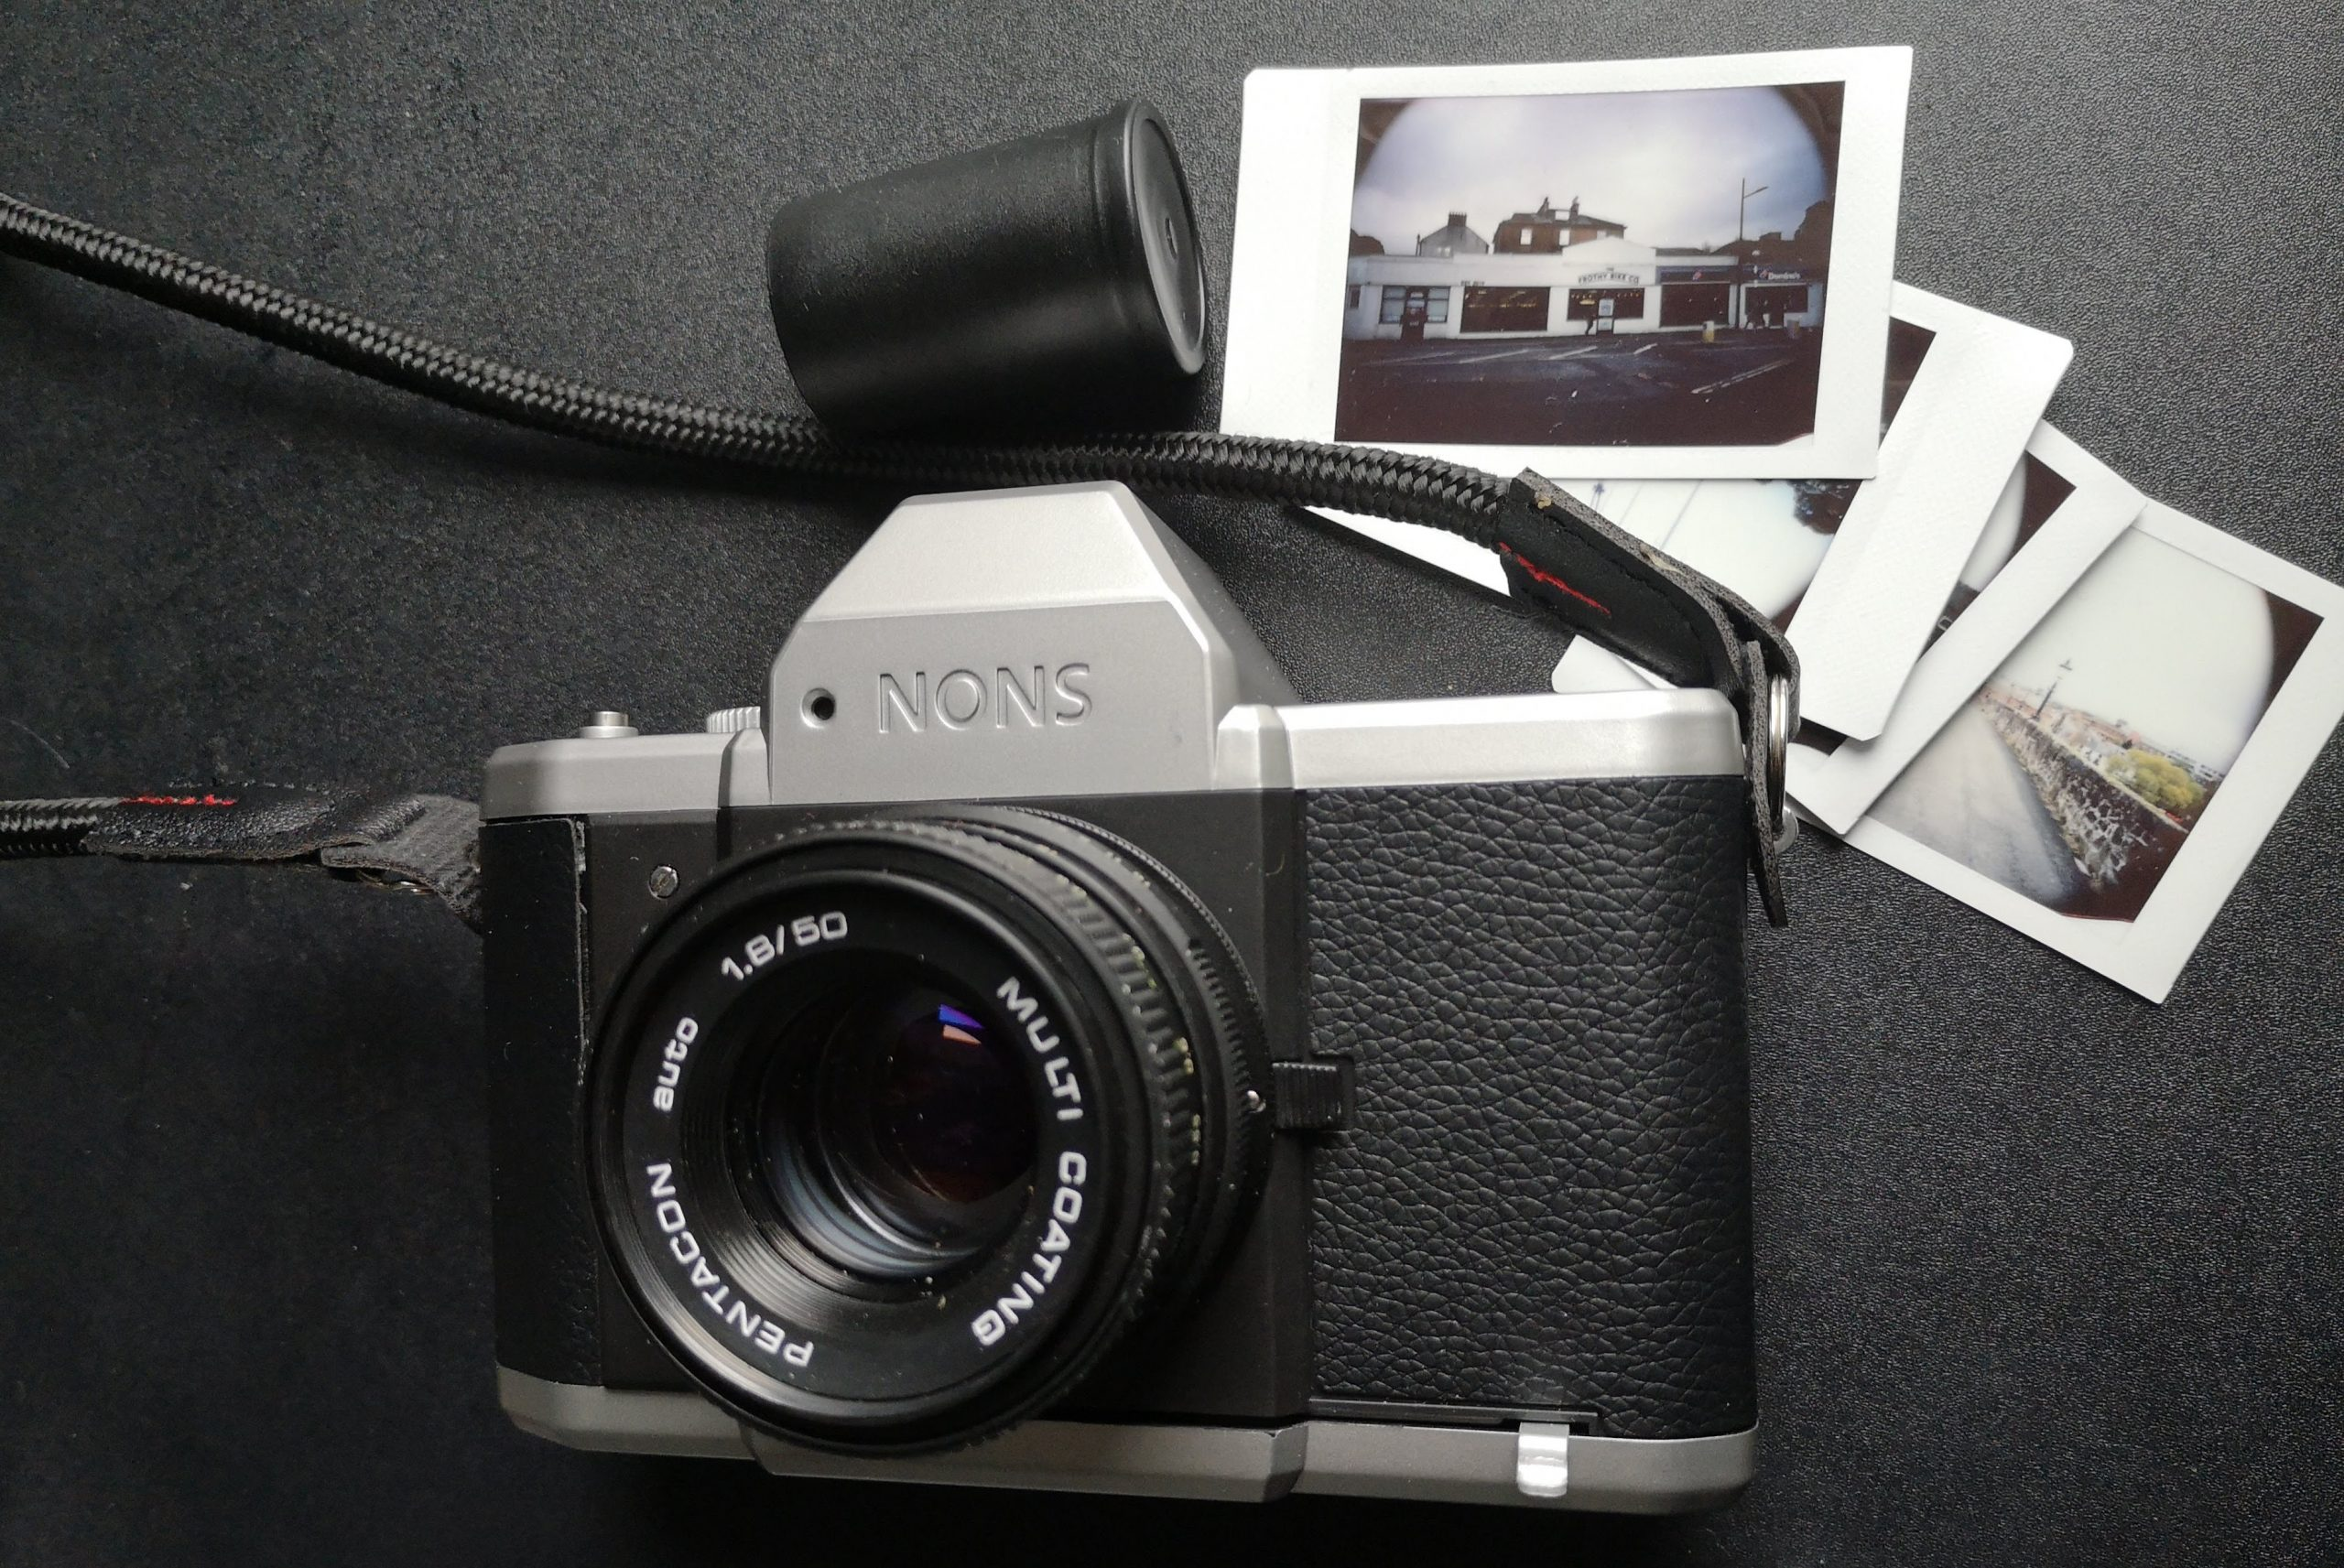 Nons SL42 with a Pentacon 50mm 1:1.8